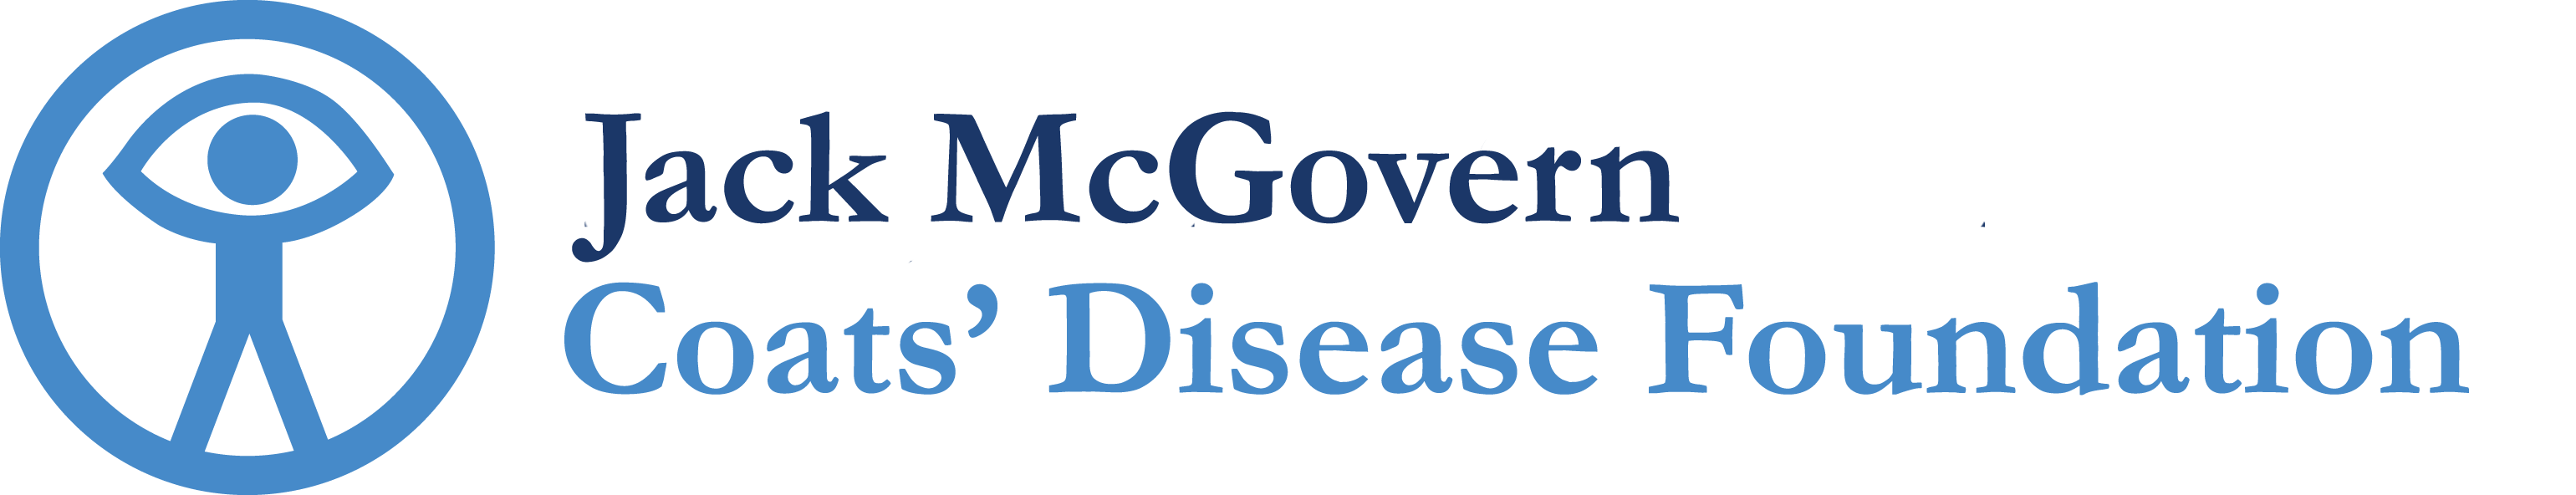 Jack McGovern Coats' Disease Foundation Logo